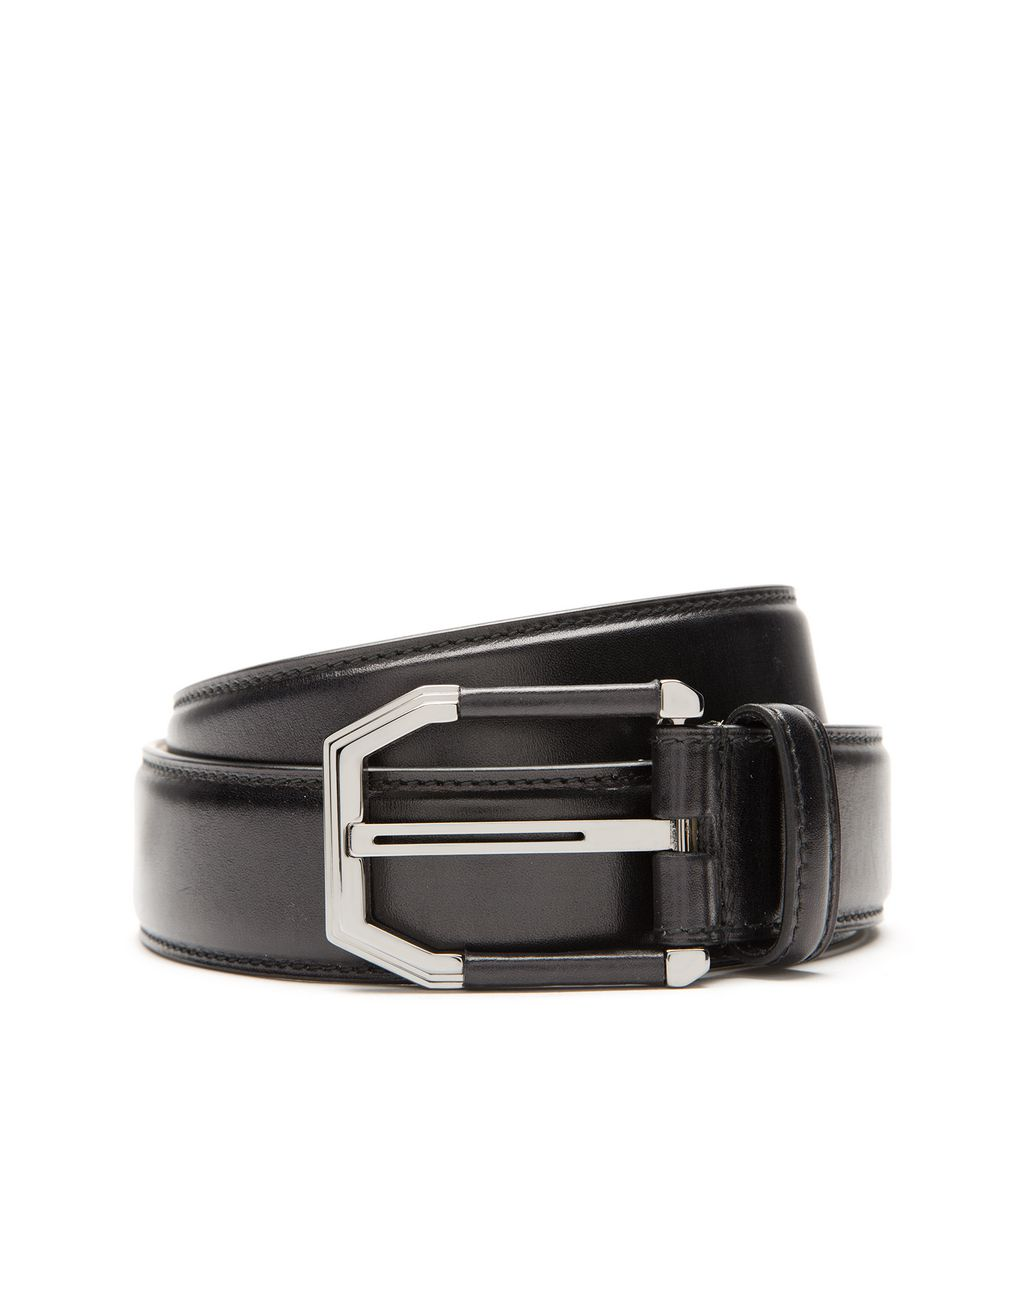 BRIONI Black Belt in Calfskin Leather with Leather Details on Buckle Belt Man r